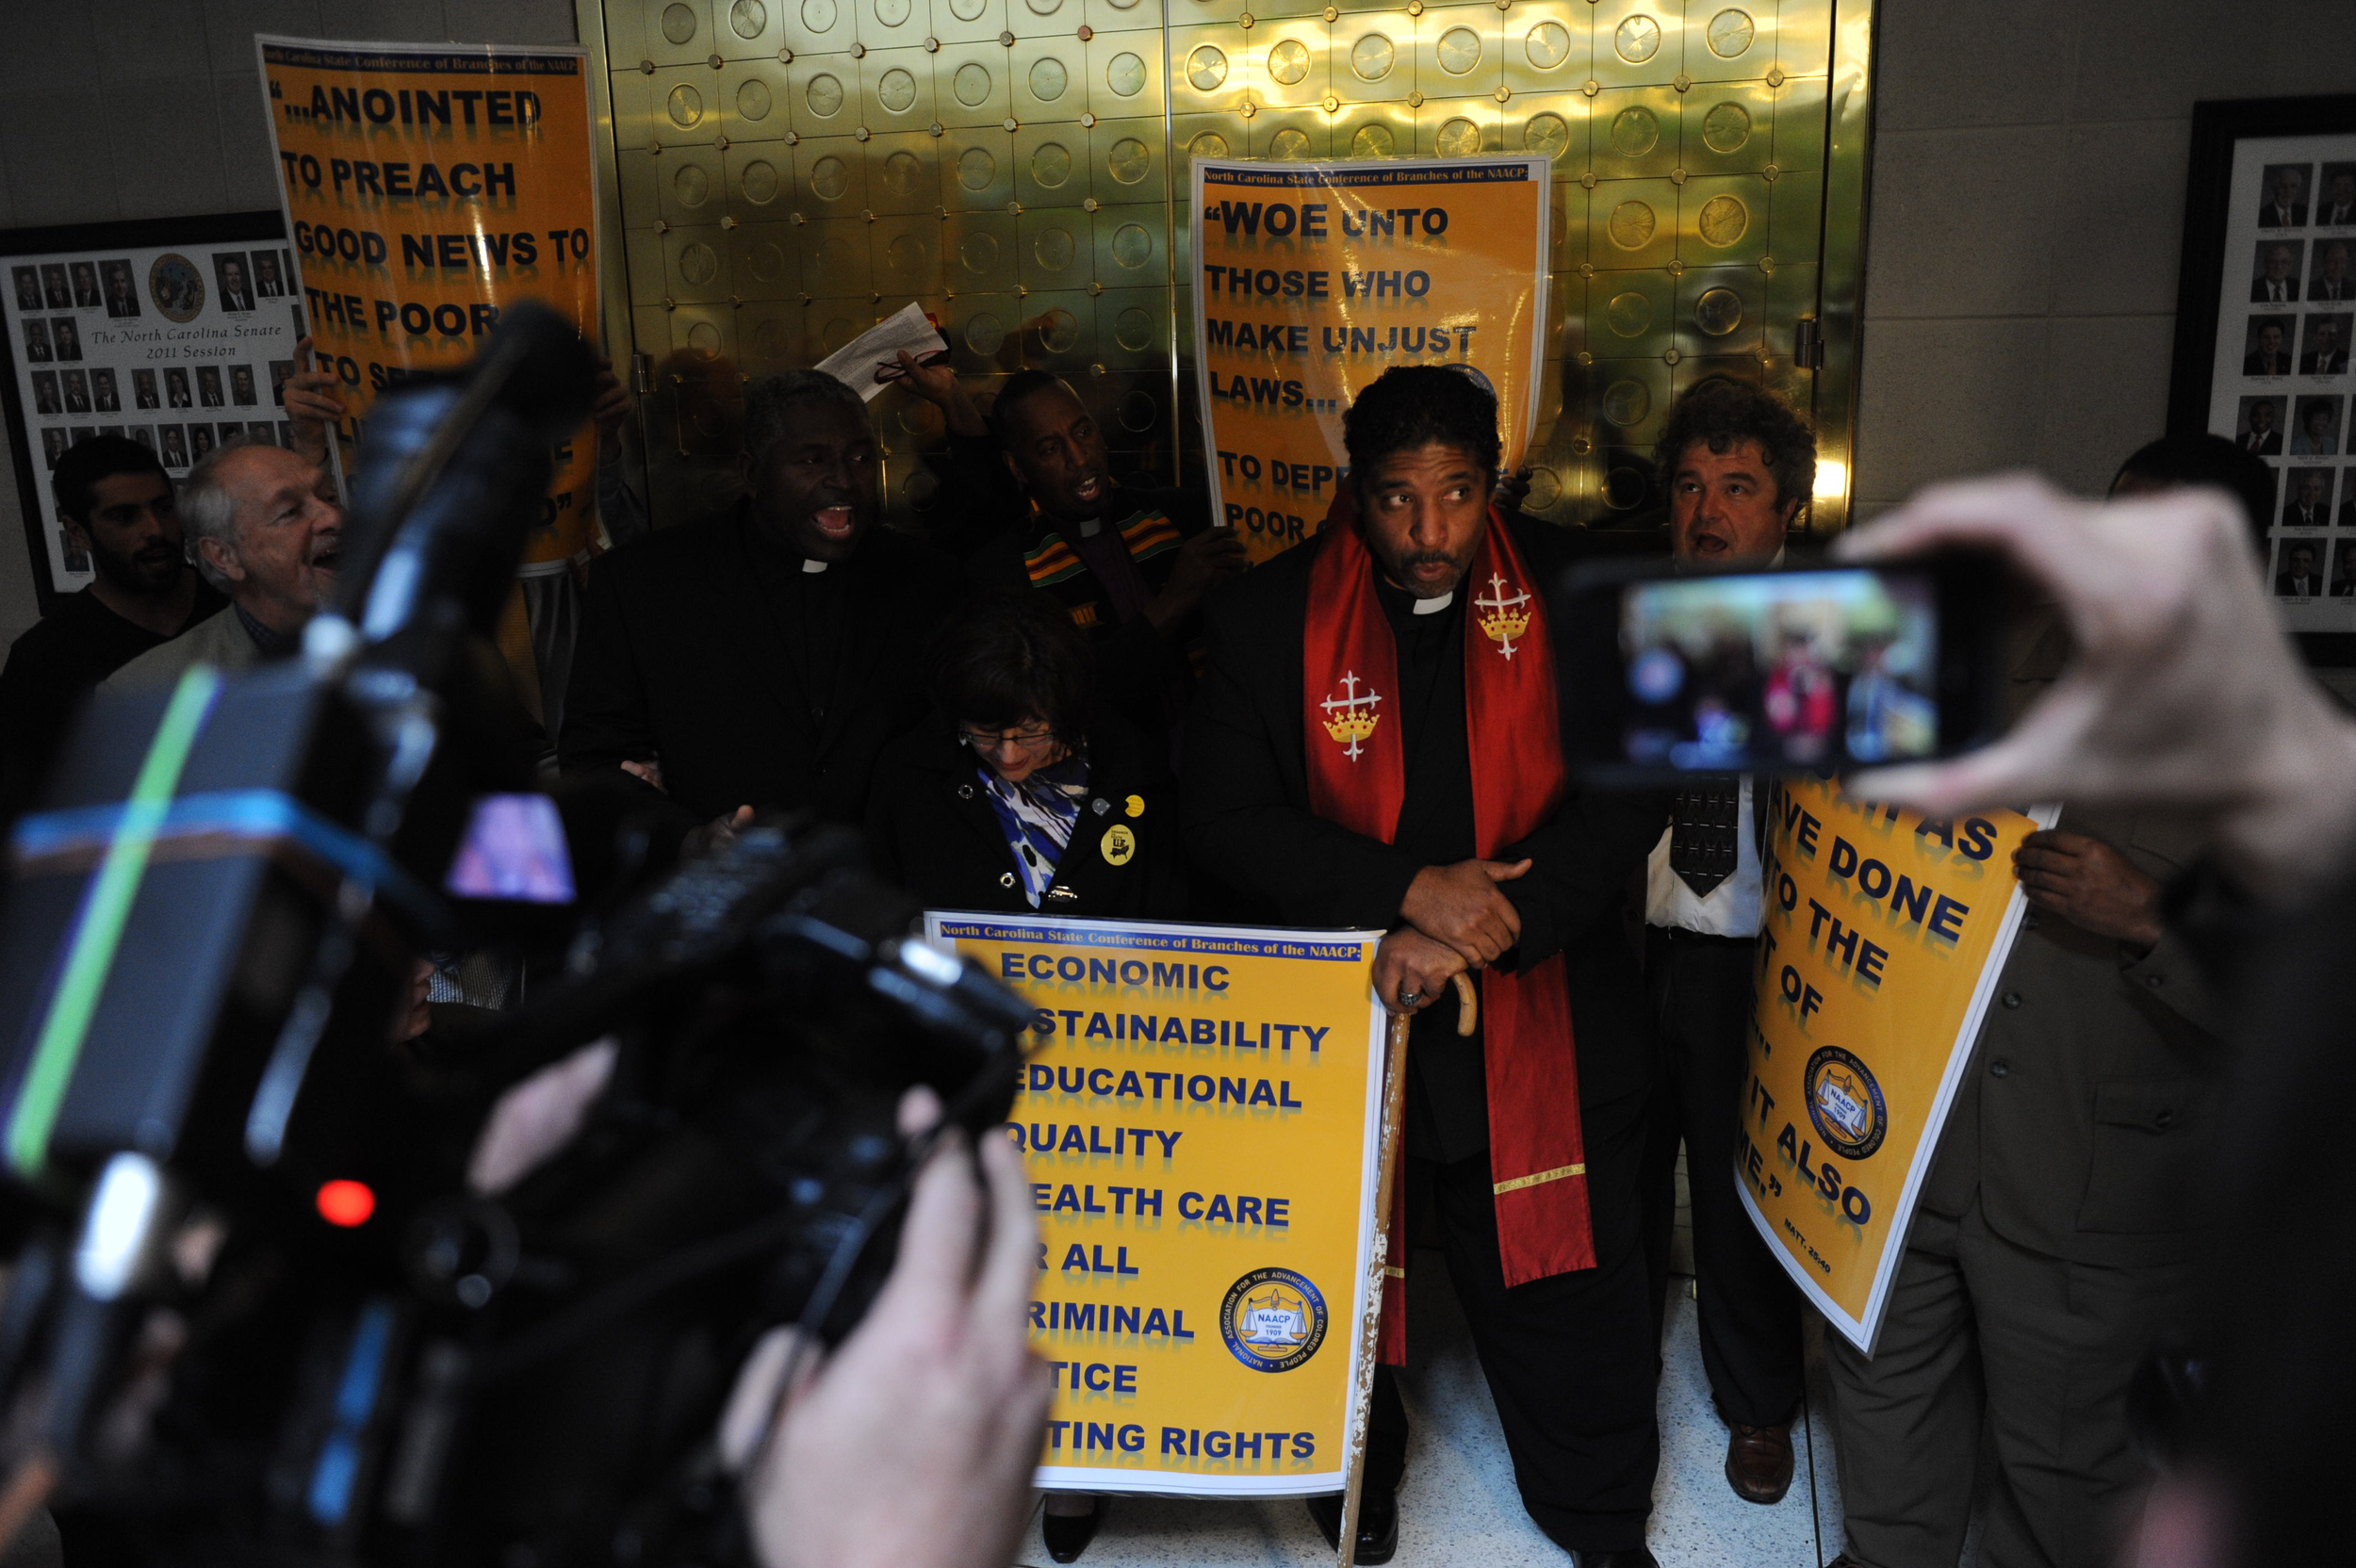 During an act of civil disobedience condemning the Republican legislature's agenda Monday, April 29, 2013, outside the N.C. Senate chamber, seventeen people including N.C. NAACP President Rev. William Barber were arrested.